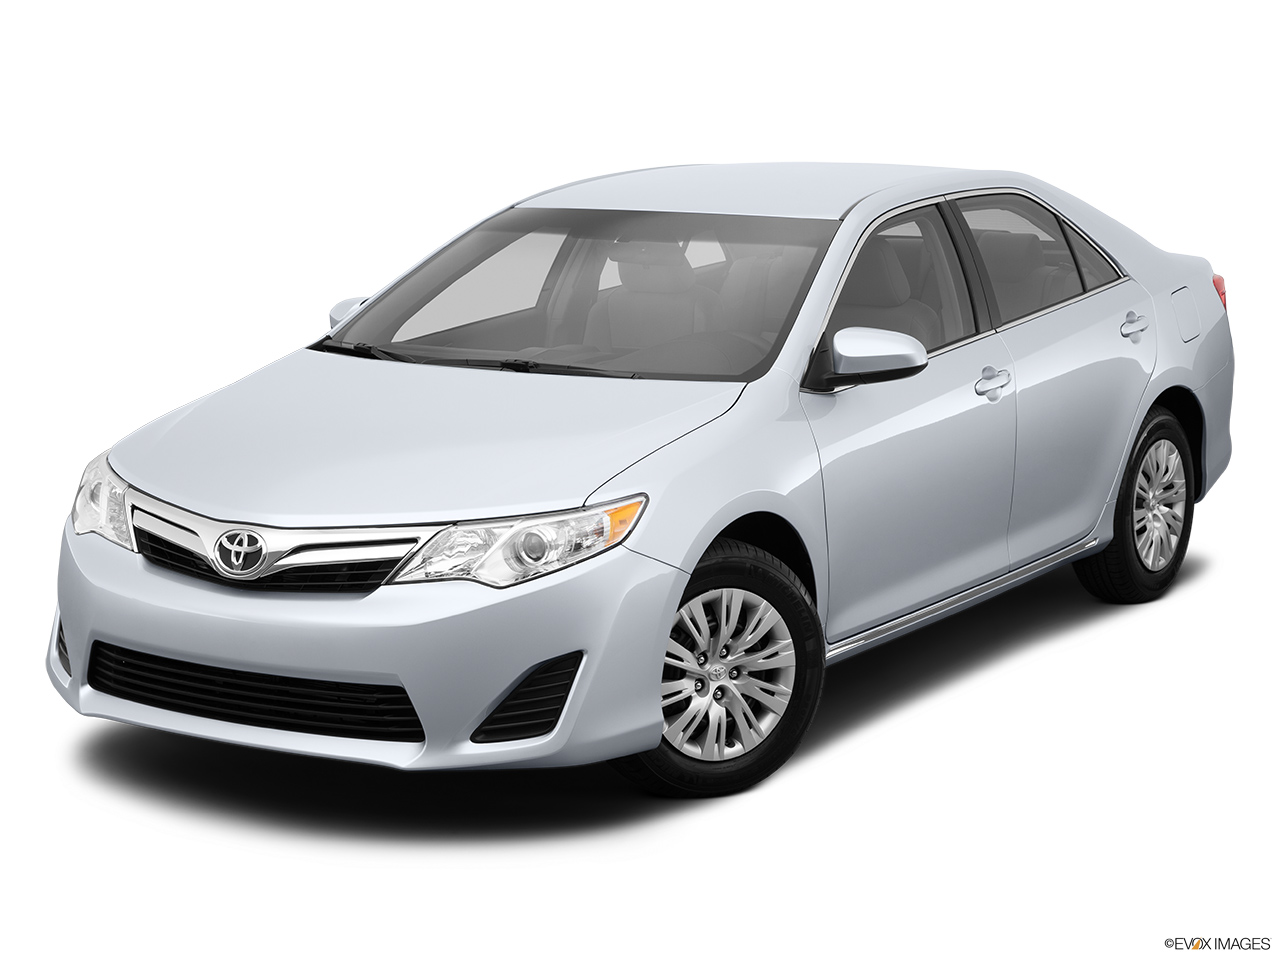 2006 toyota camry nada 2006 toyota camry solara values. Black Bedroom Furniture Sets. Home Design Ideas